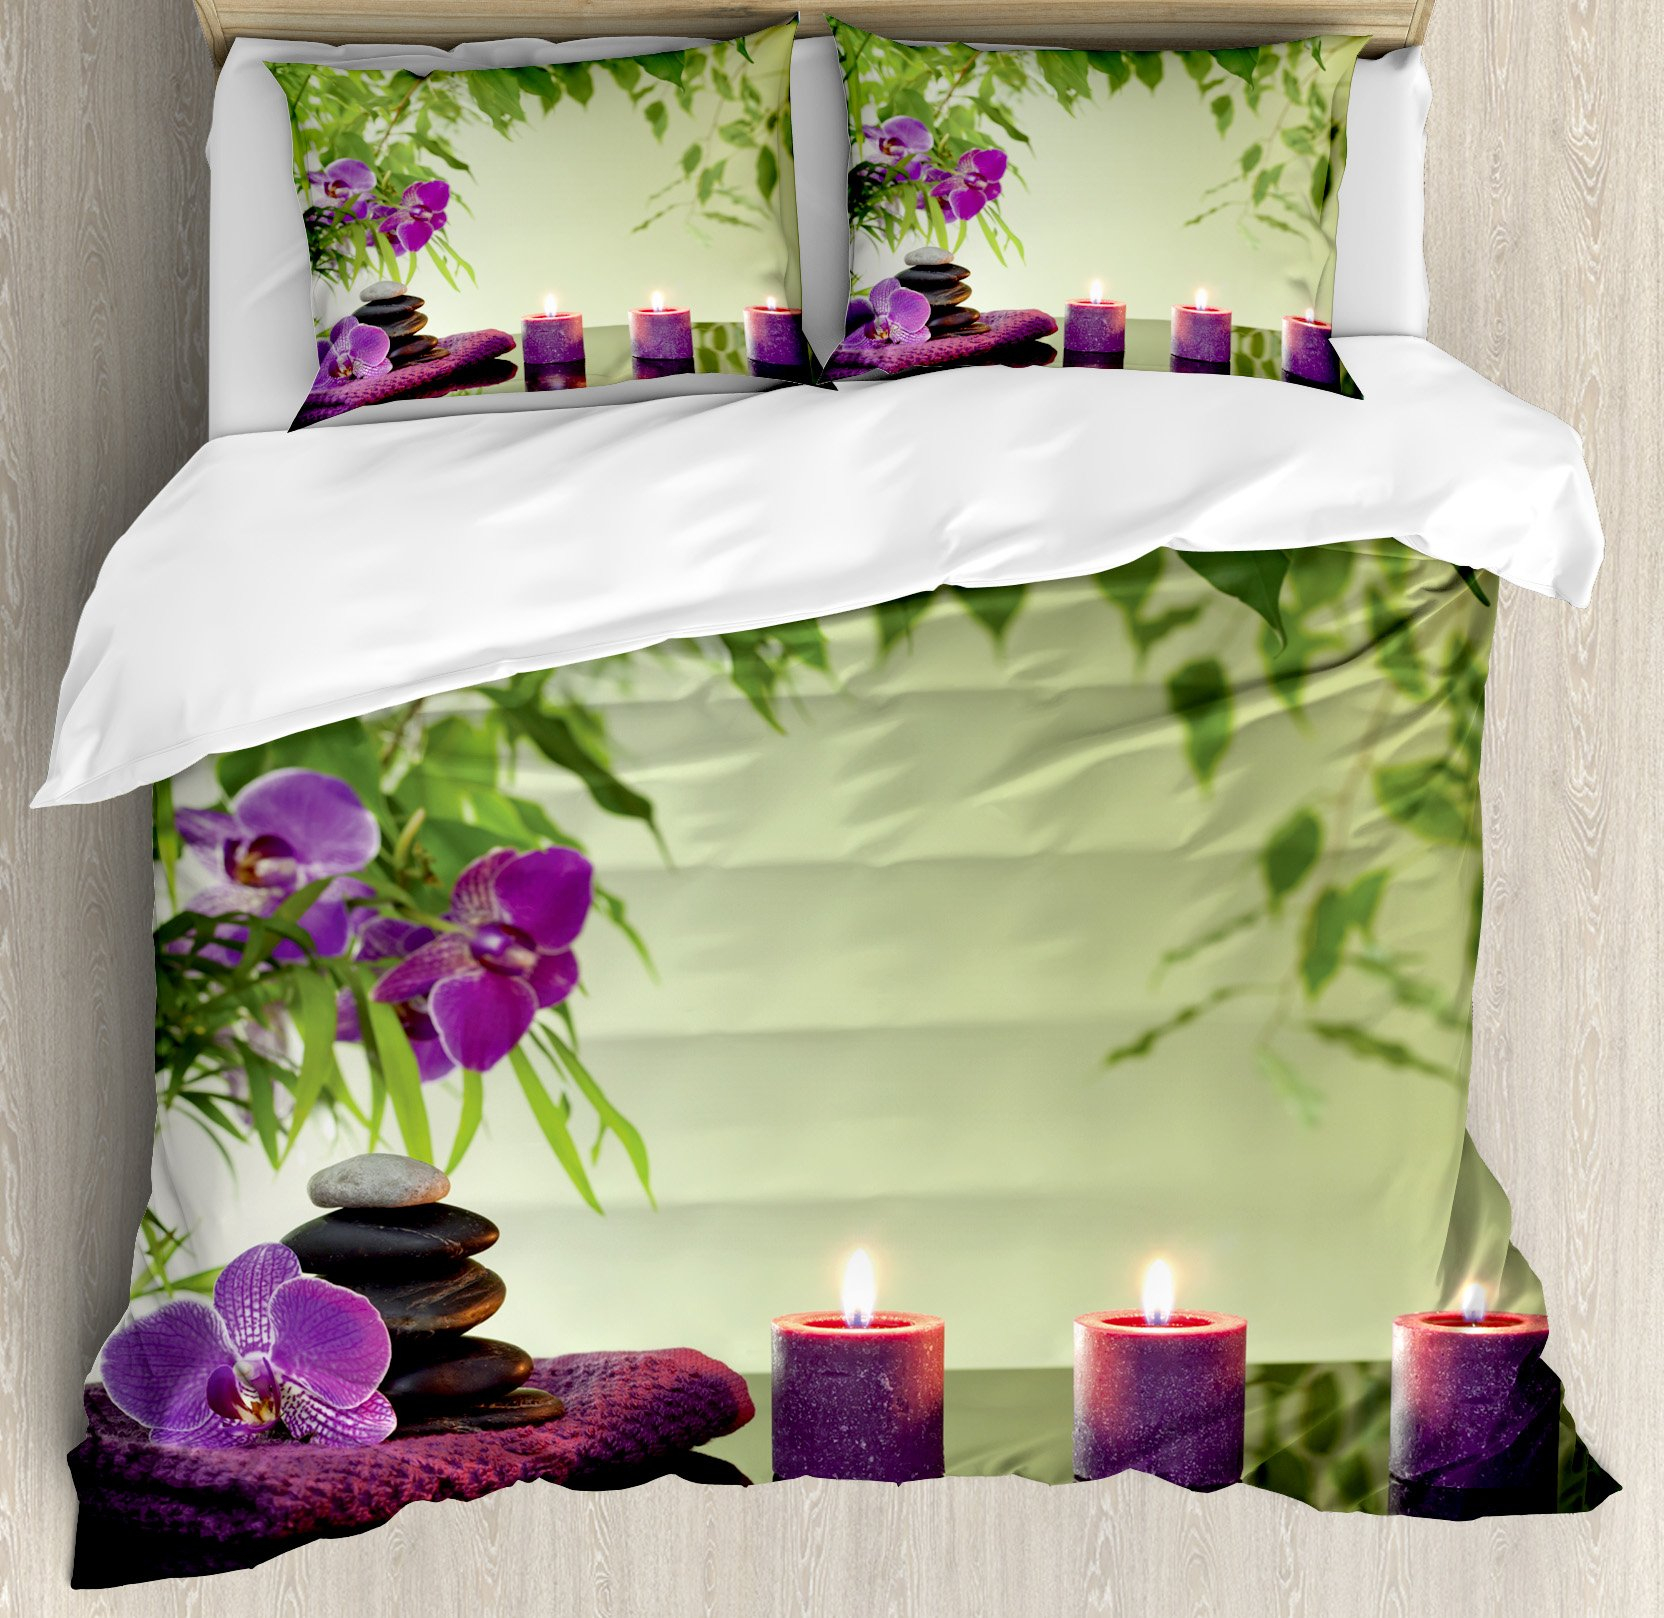 Spa Decor Duvet Cover Set King Size by Ambesonne, Zen Stones Aromatic Candles and Orchids Blooms Treatment Vacation, Decorative 3 Piece Bedding Set with 2 Pillow Shams